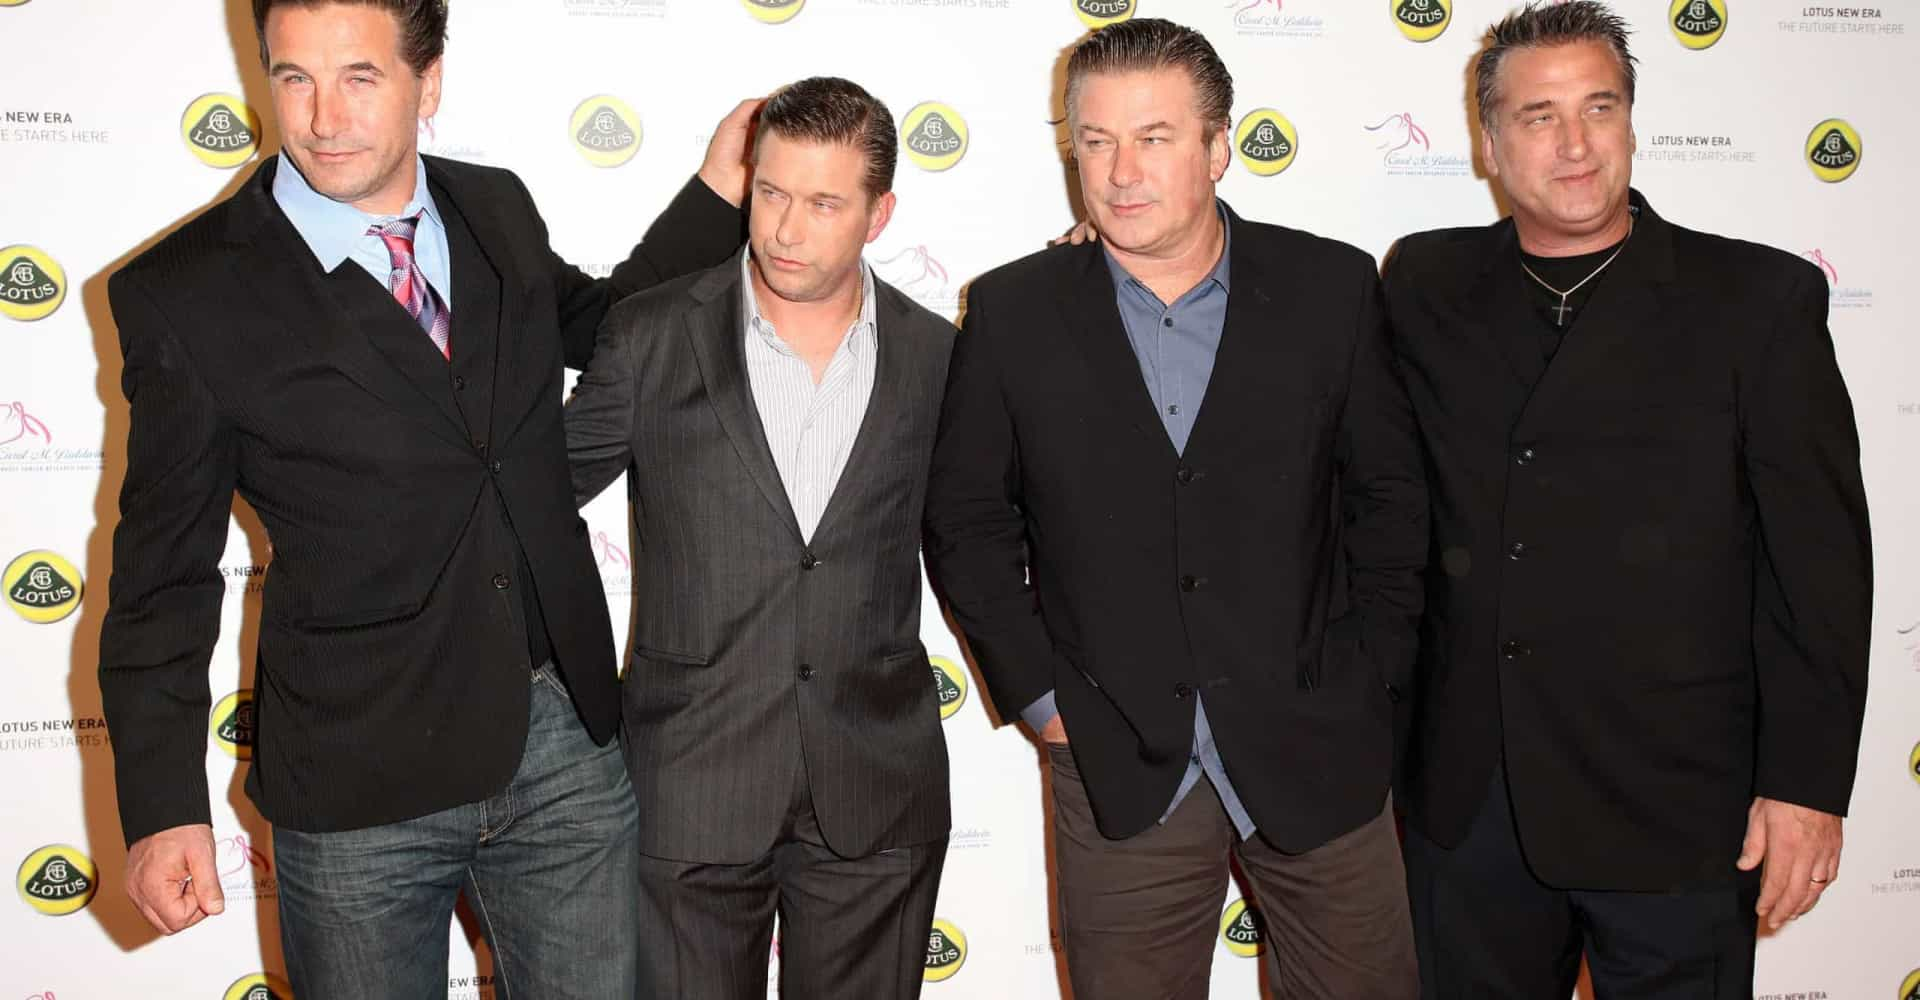 The Baldwin brothers, cinema's savviest siblings